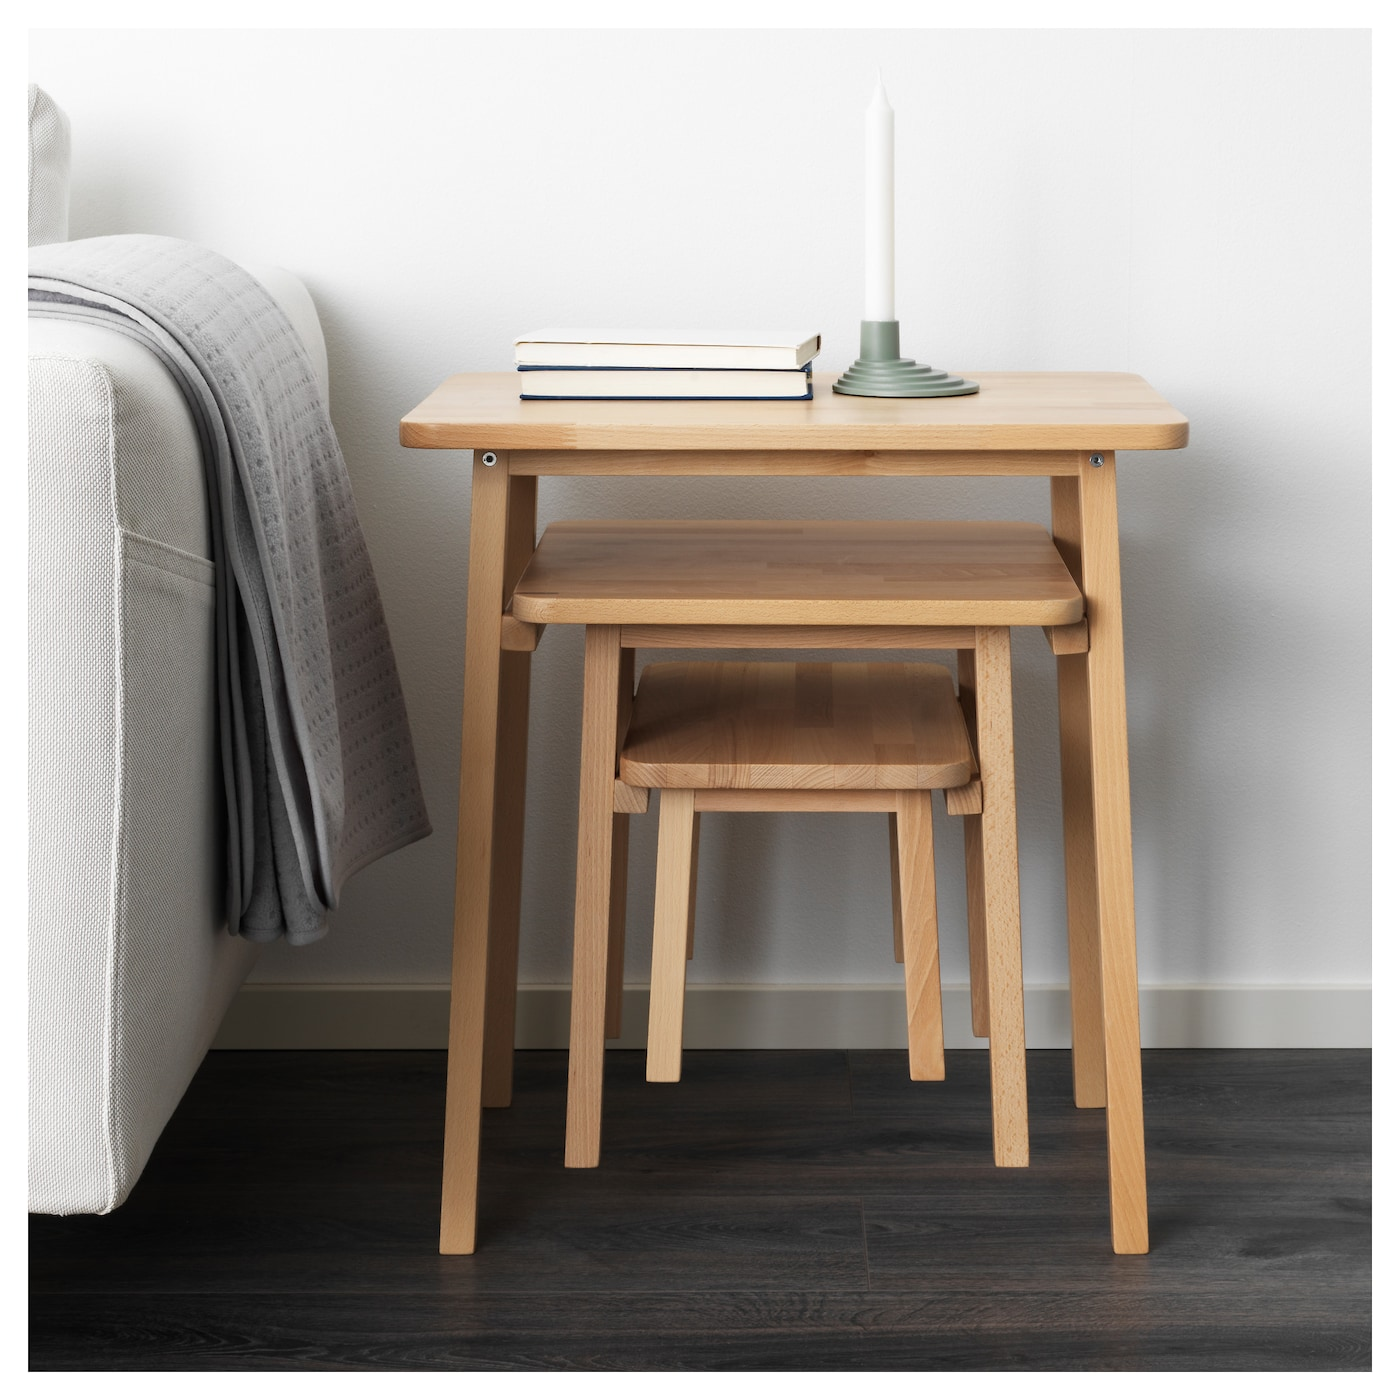 IKEA YPPERLIG nest of tables, set of 3 Solid beech is a hard-wearing natural material.